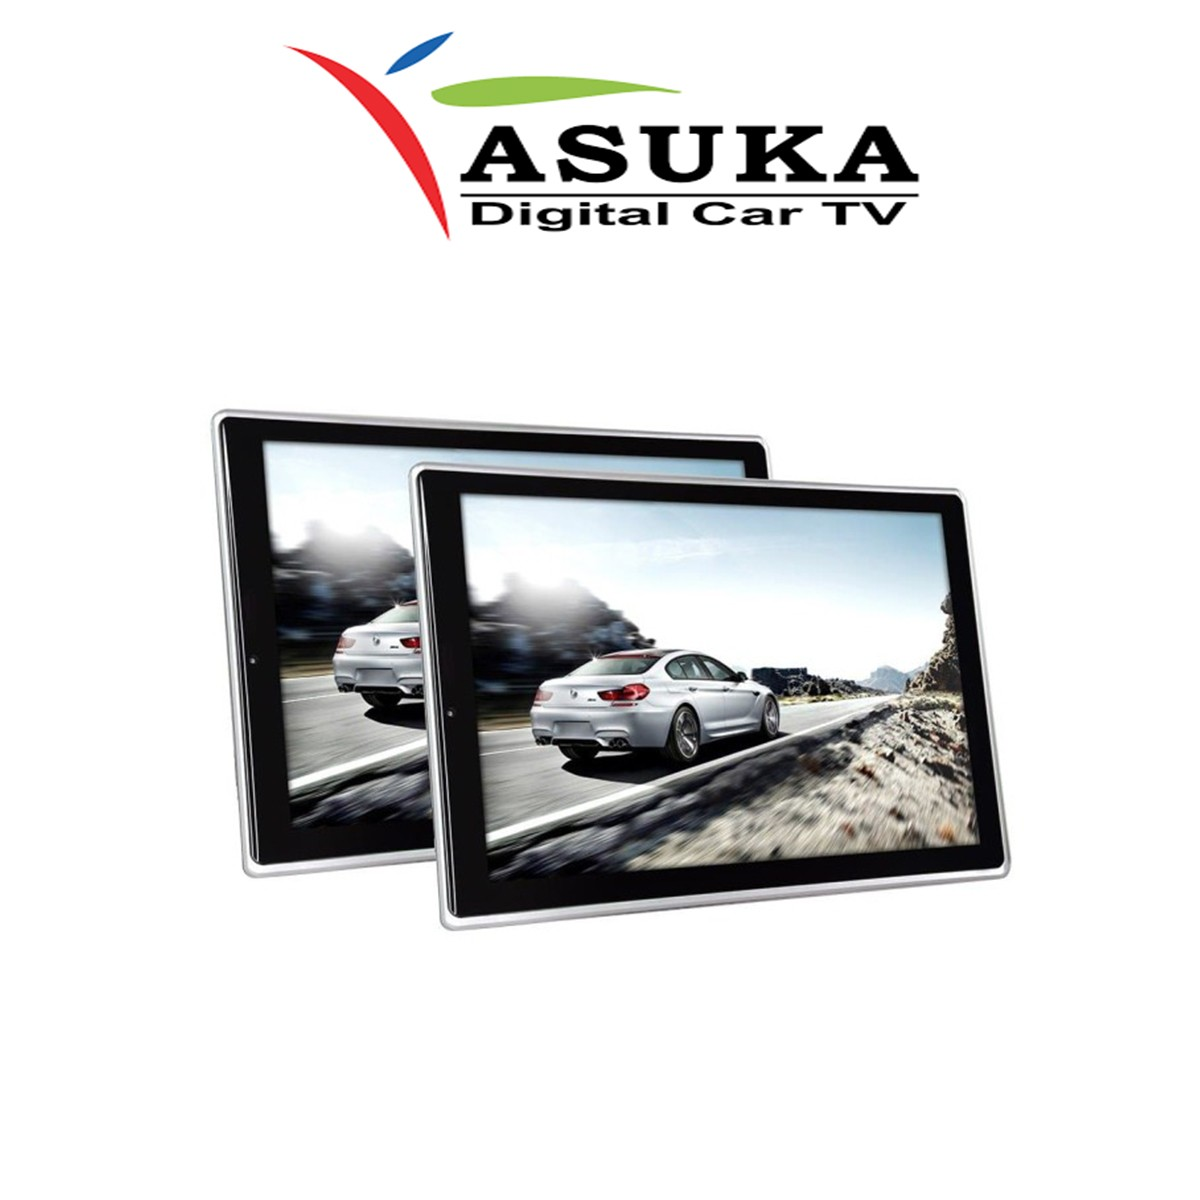 ASUKA AS 1180U - MONITOR HEADREST CLIPON ANDROID 11,8 INCH